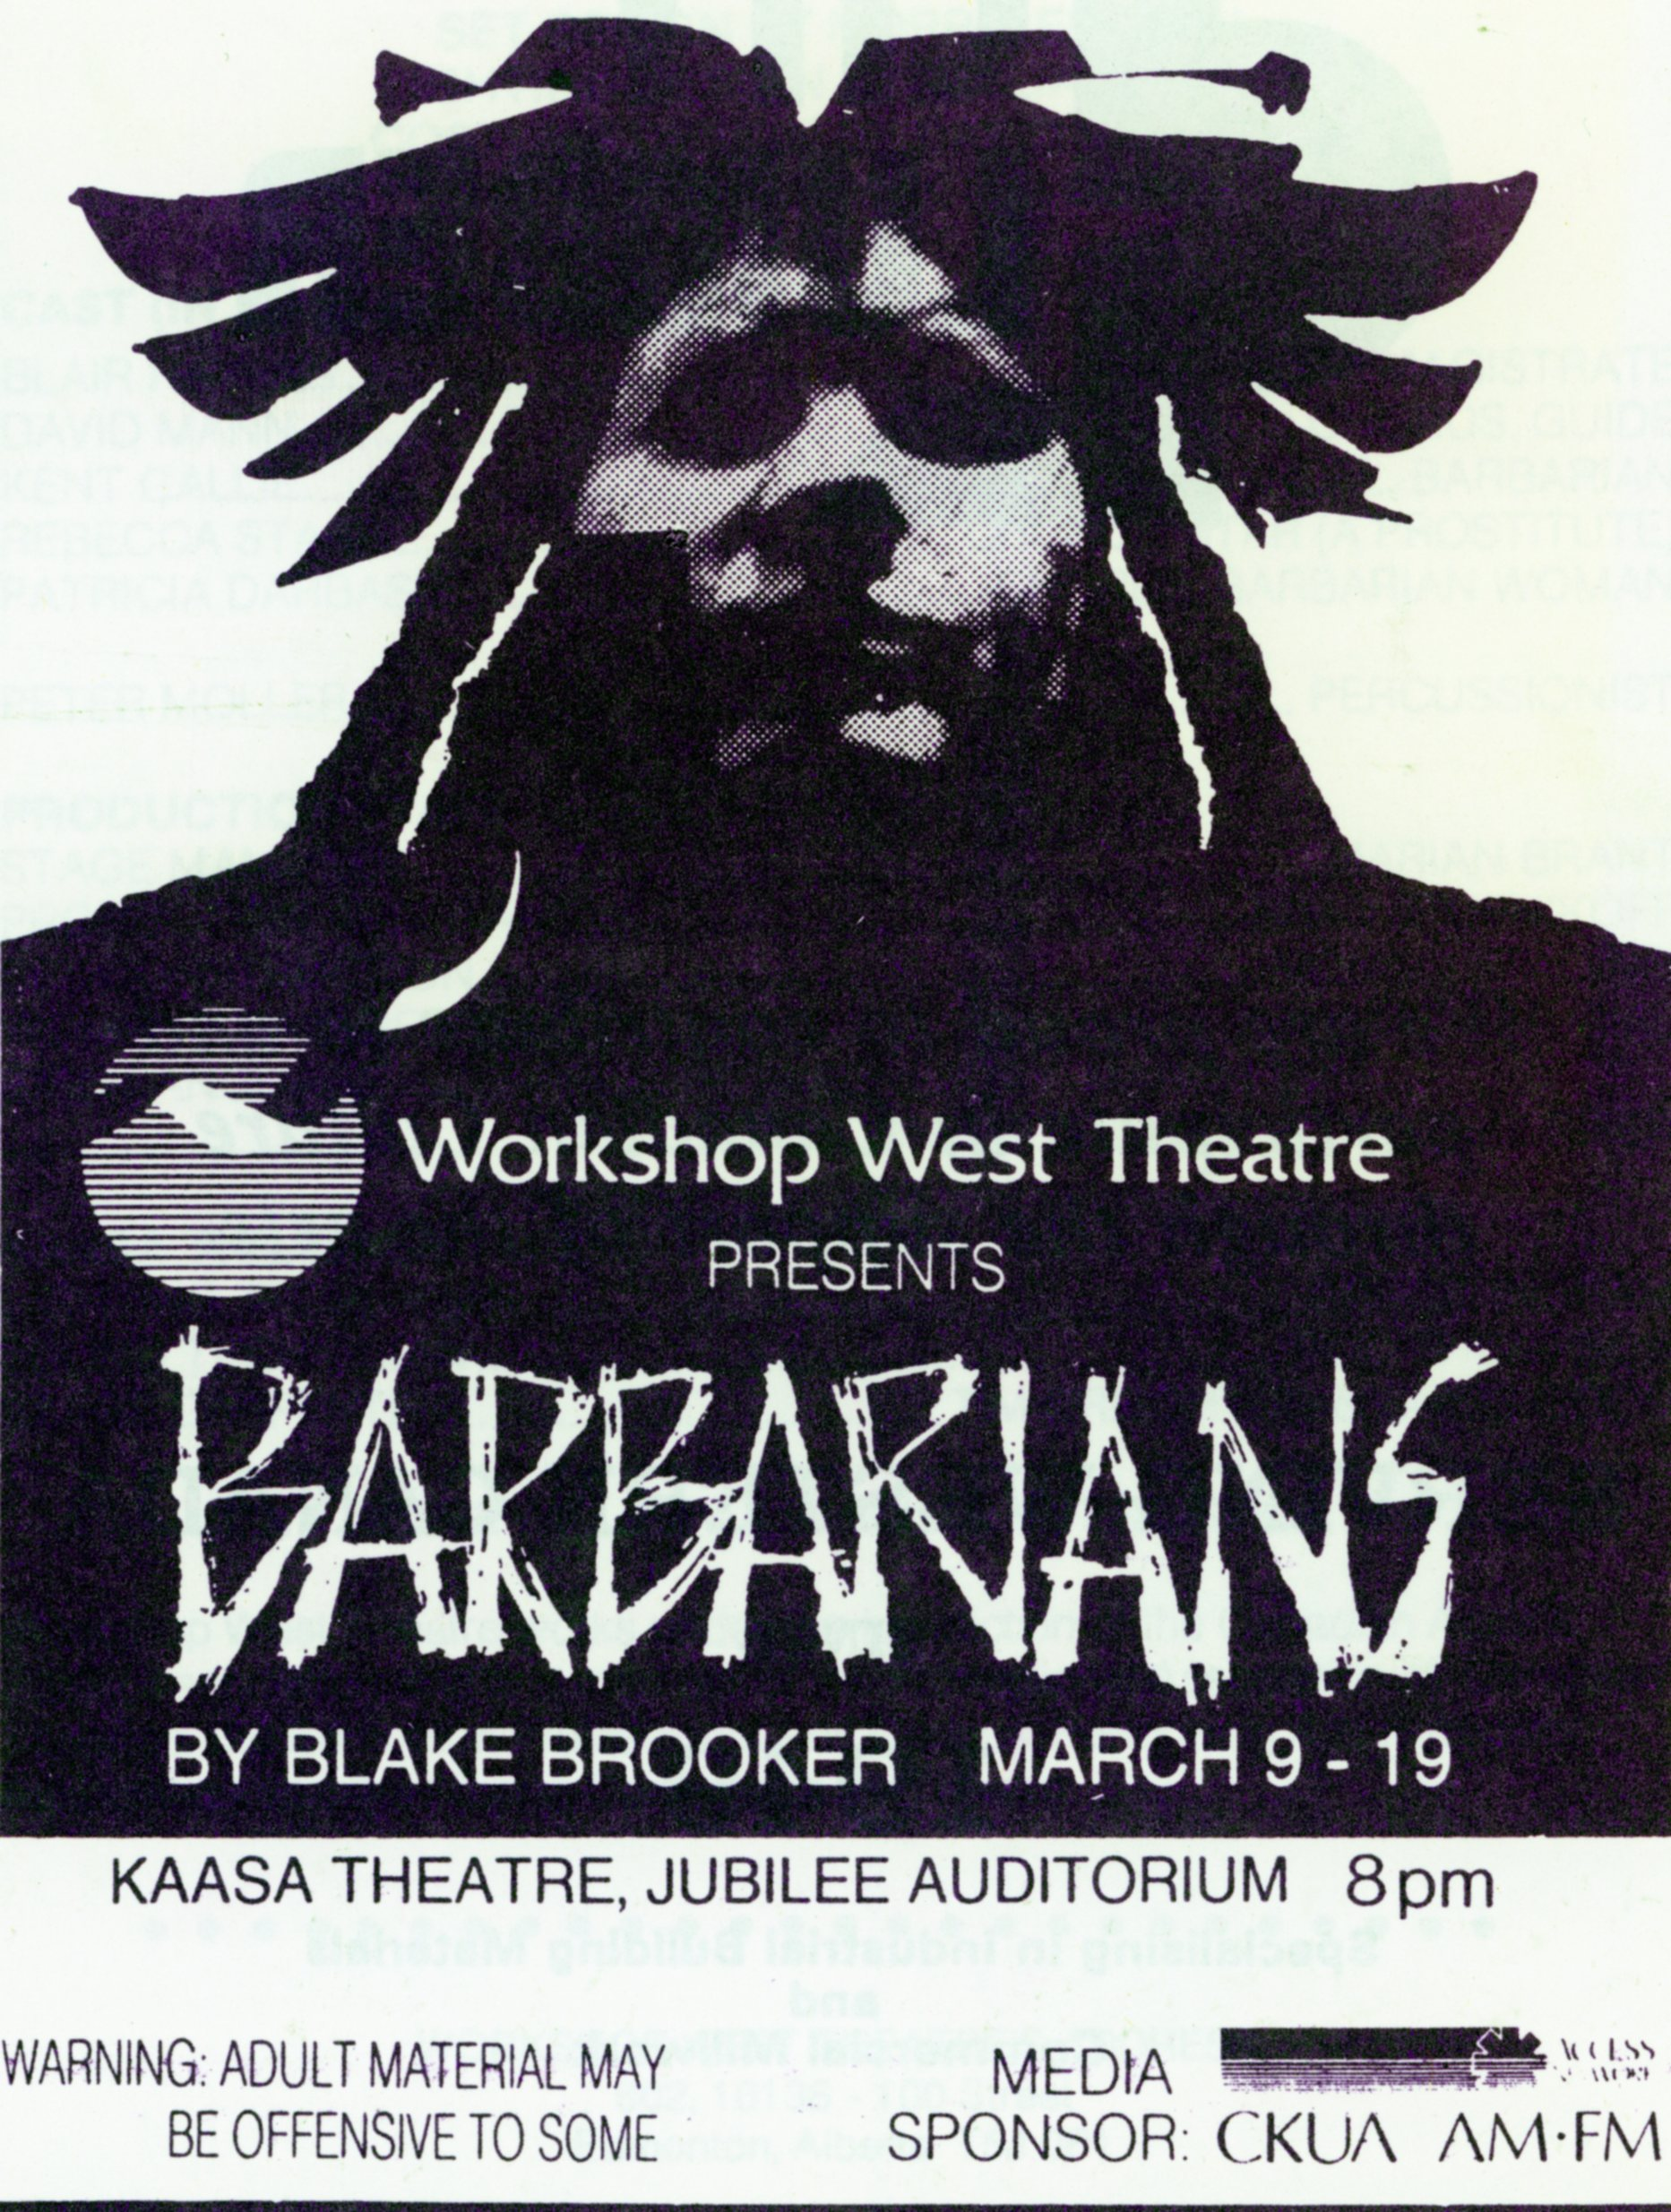 Barbarians (March, 1989)-Program Cover JPEG.jpg